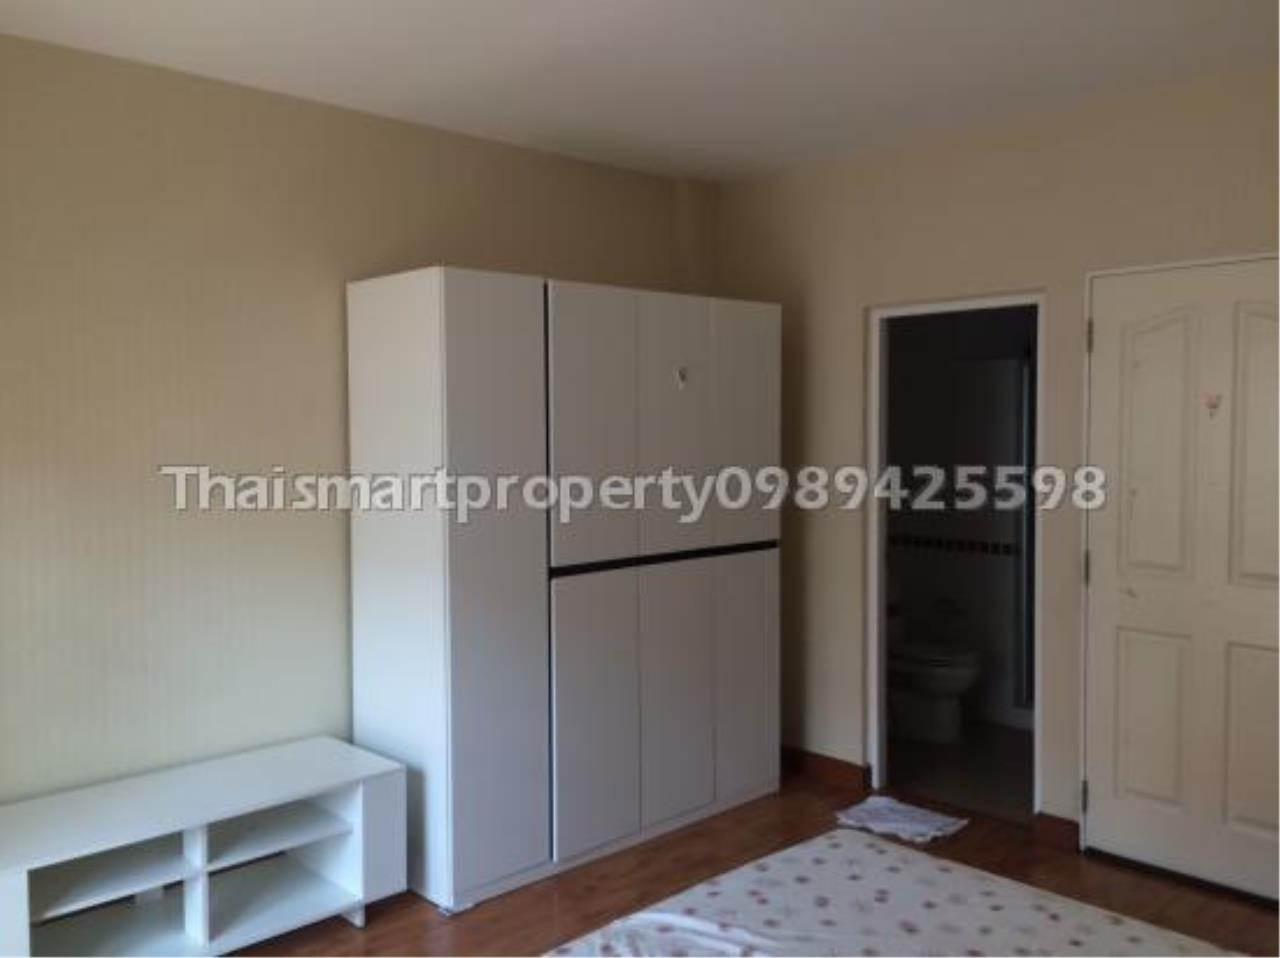 Thai Smart Property Agency's 3 storey townhome for sale, Casa City Sukontasawat 2 7